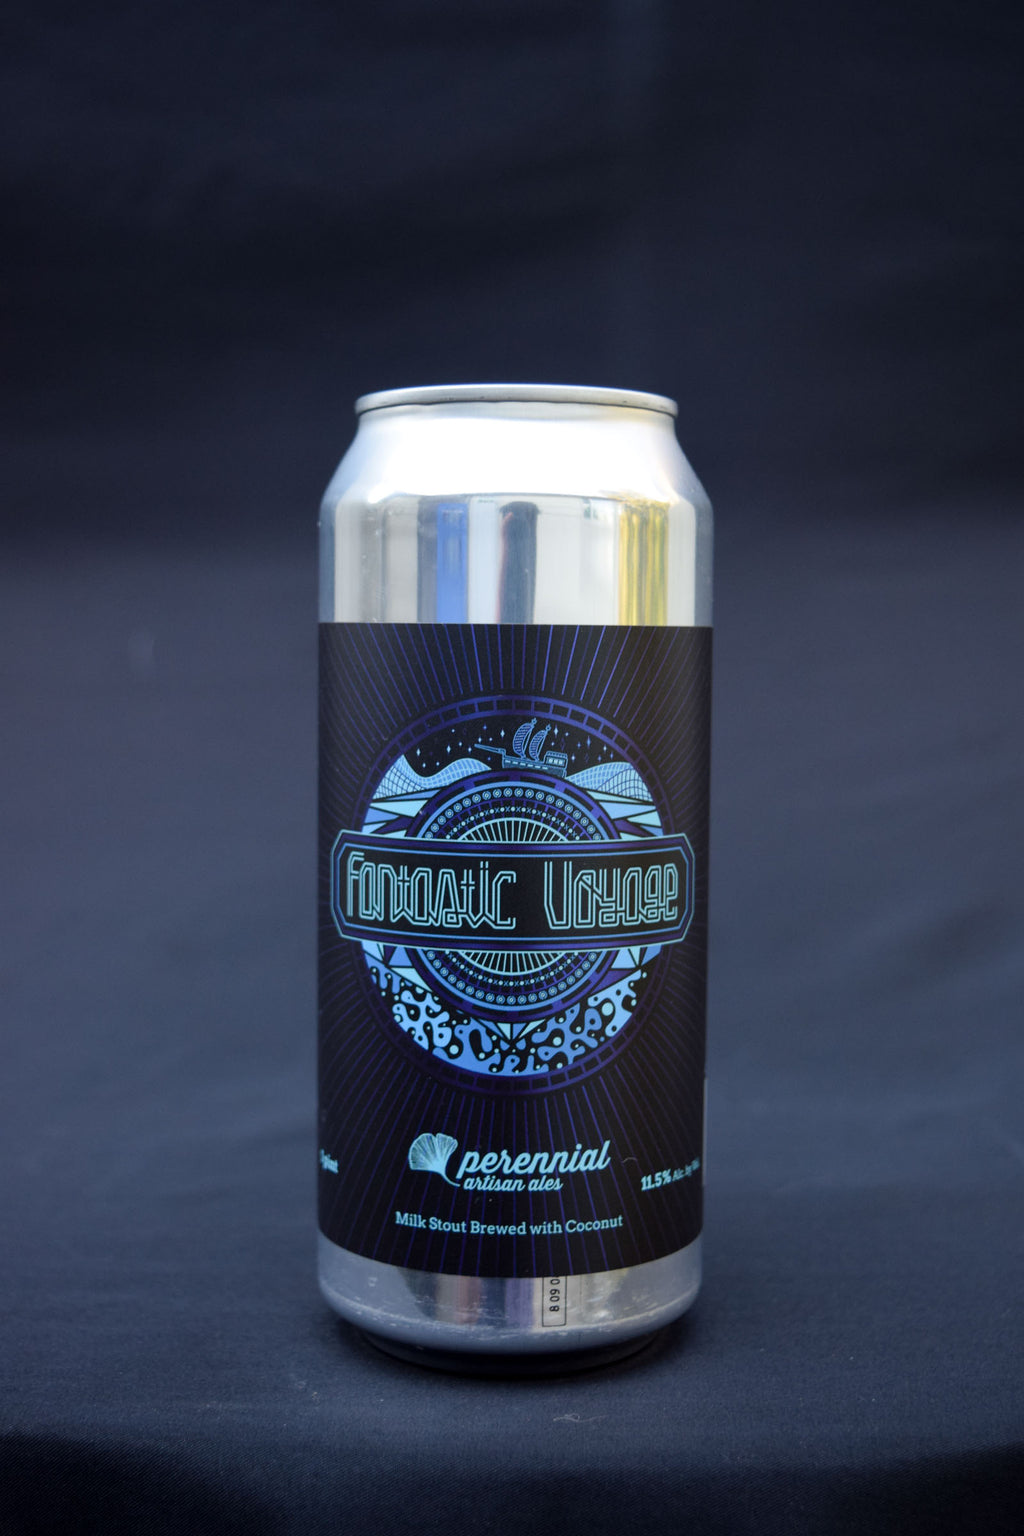 Perennial Ales Fantastic Voyage Imperial Milk Stout